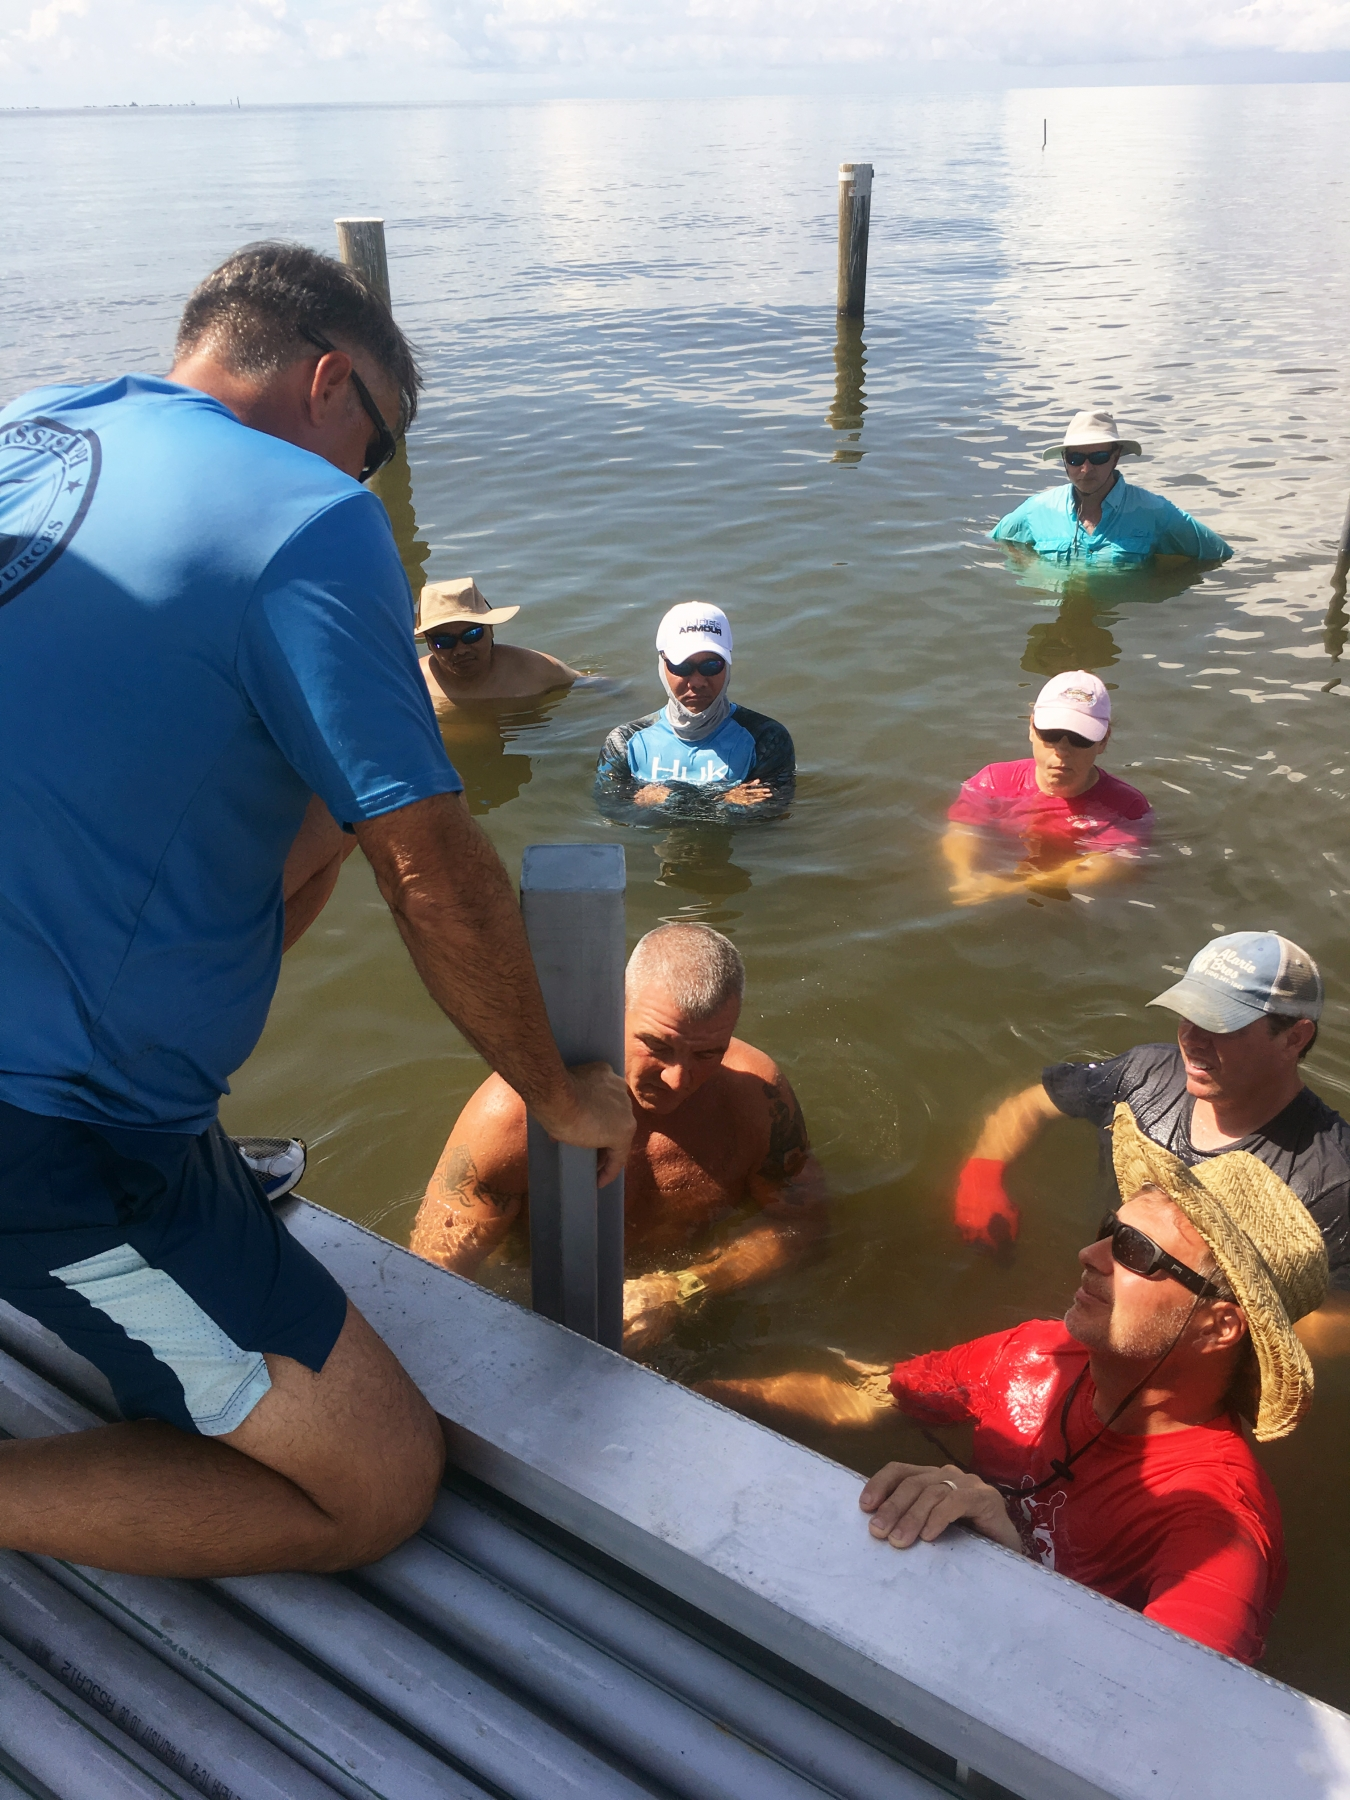 The class installs posts for an adjustable long-line oyster farming system. (Photo by Rusty Grice)